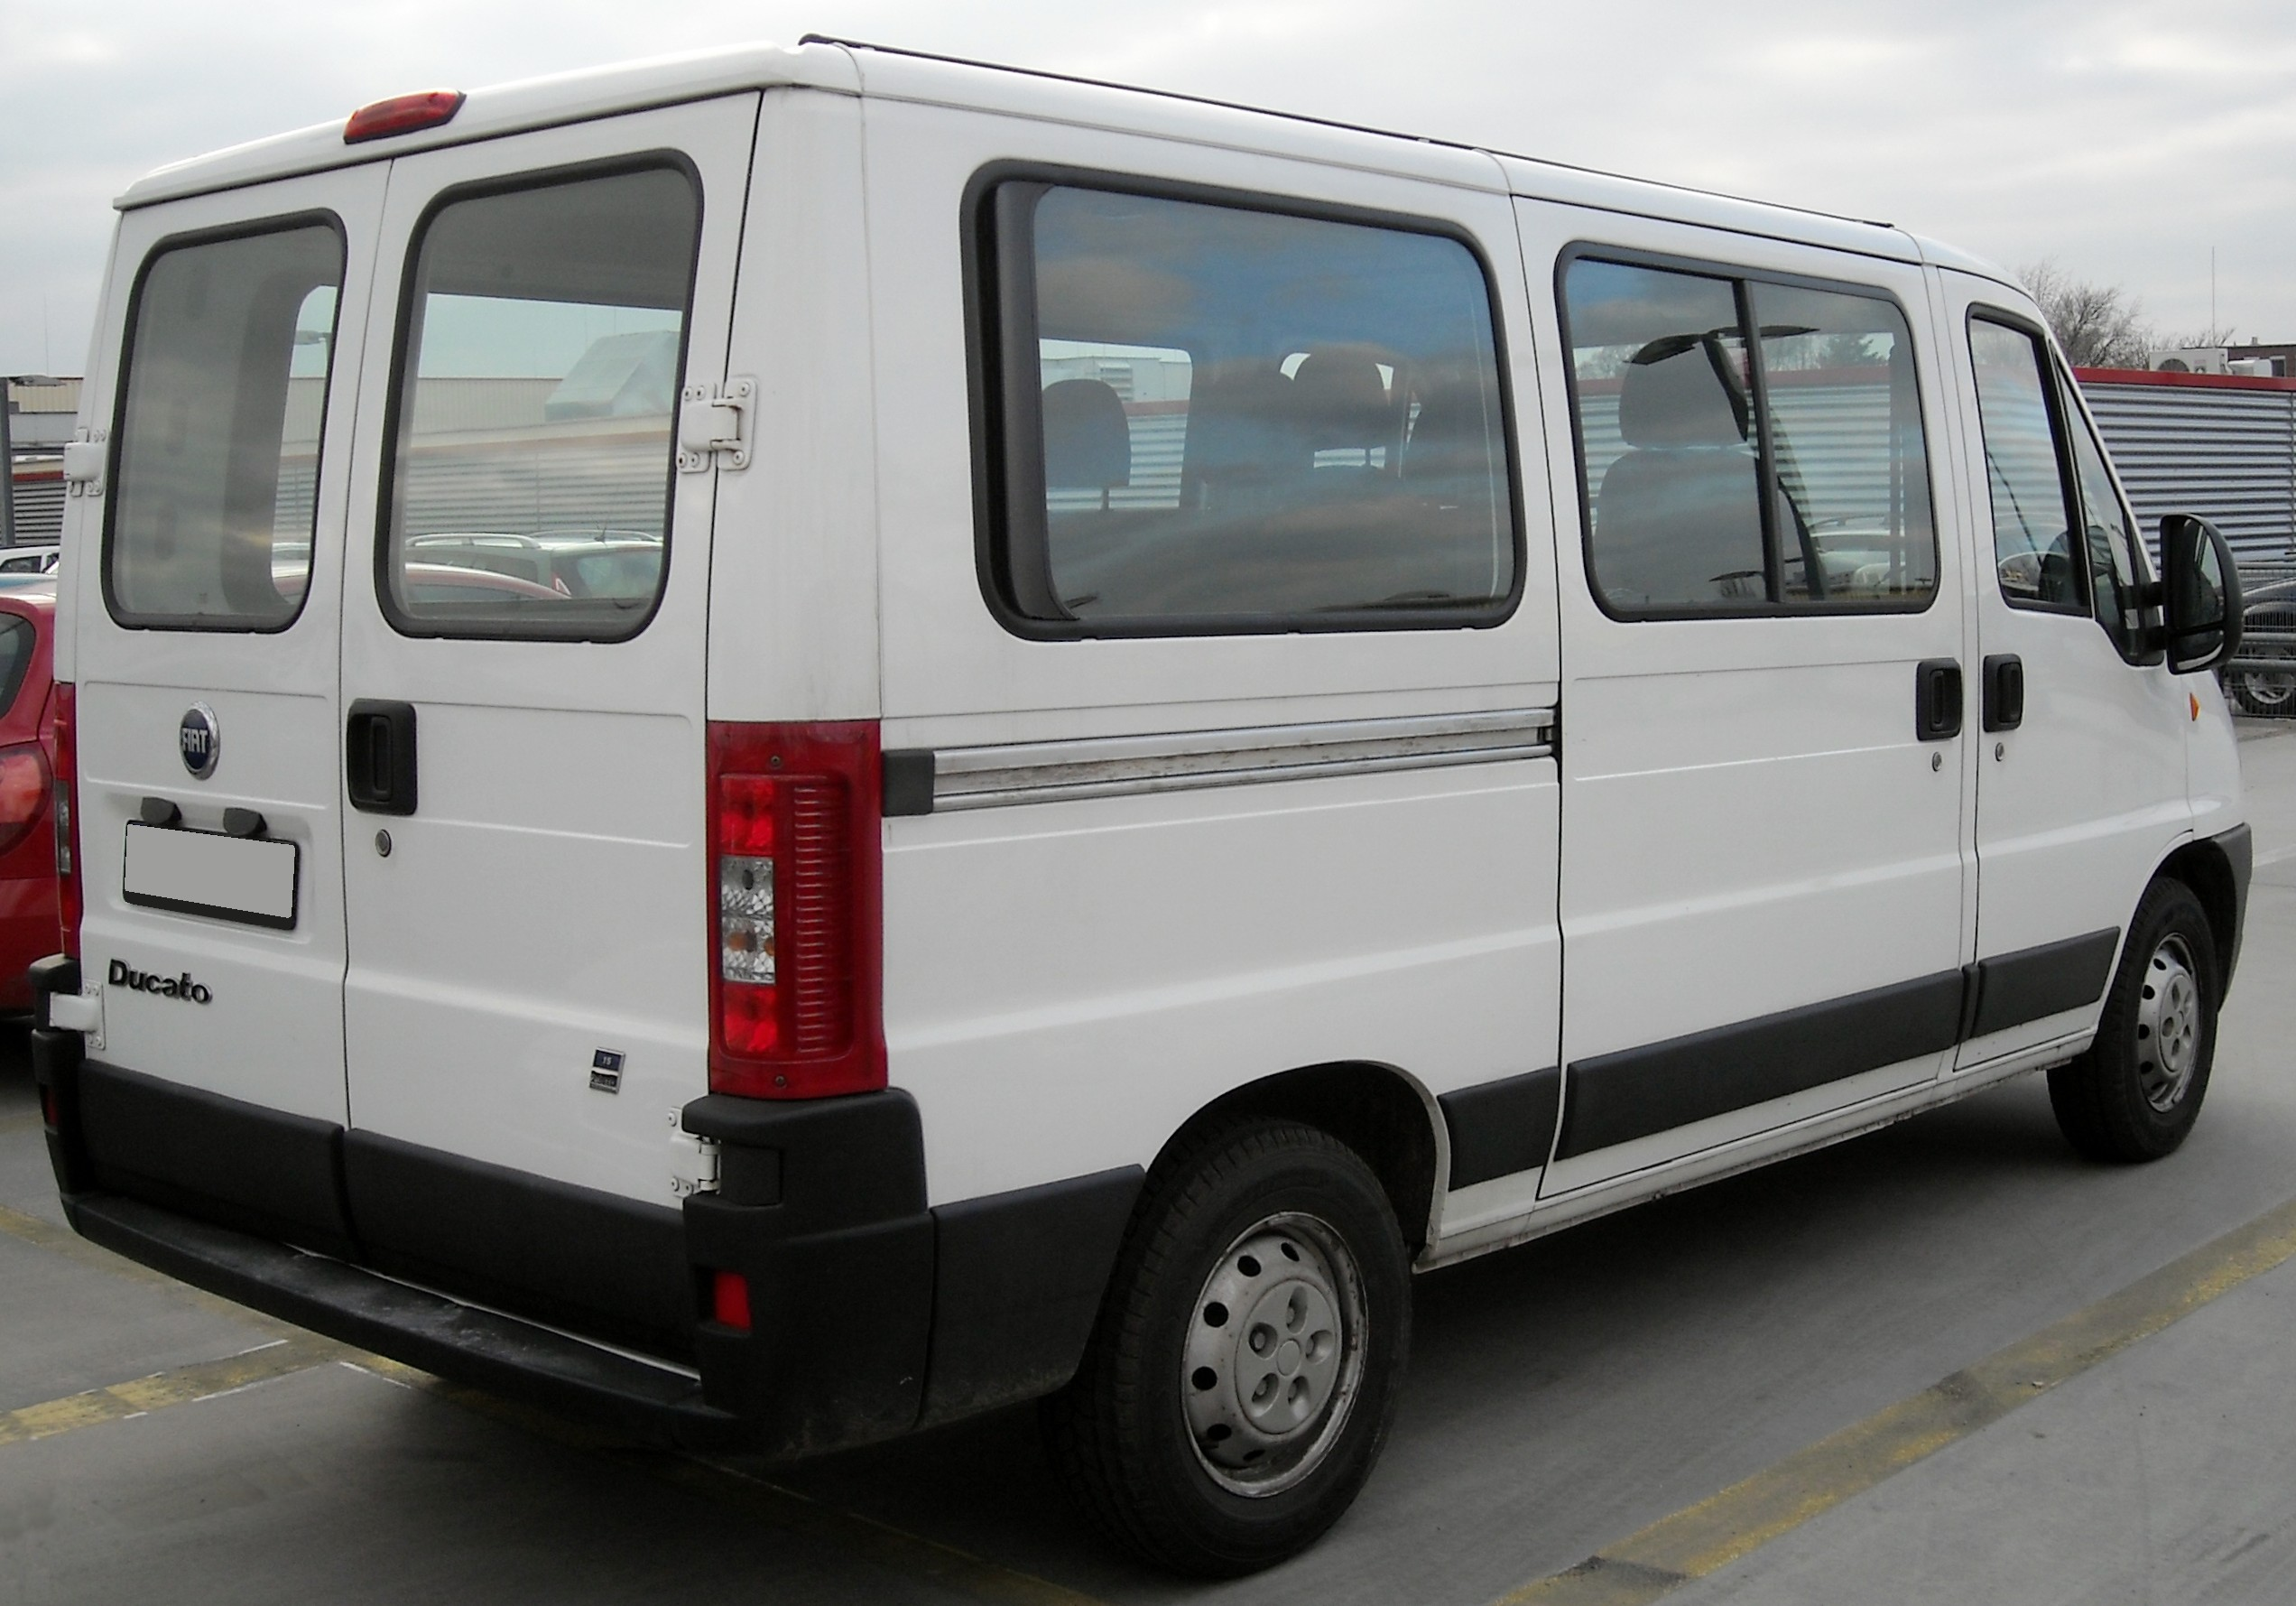 Fiat Ducato Ii Facelift Rear View